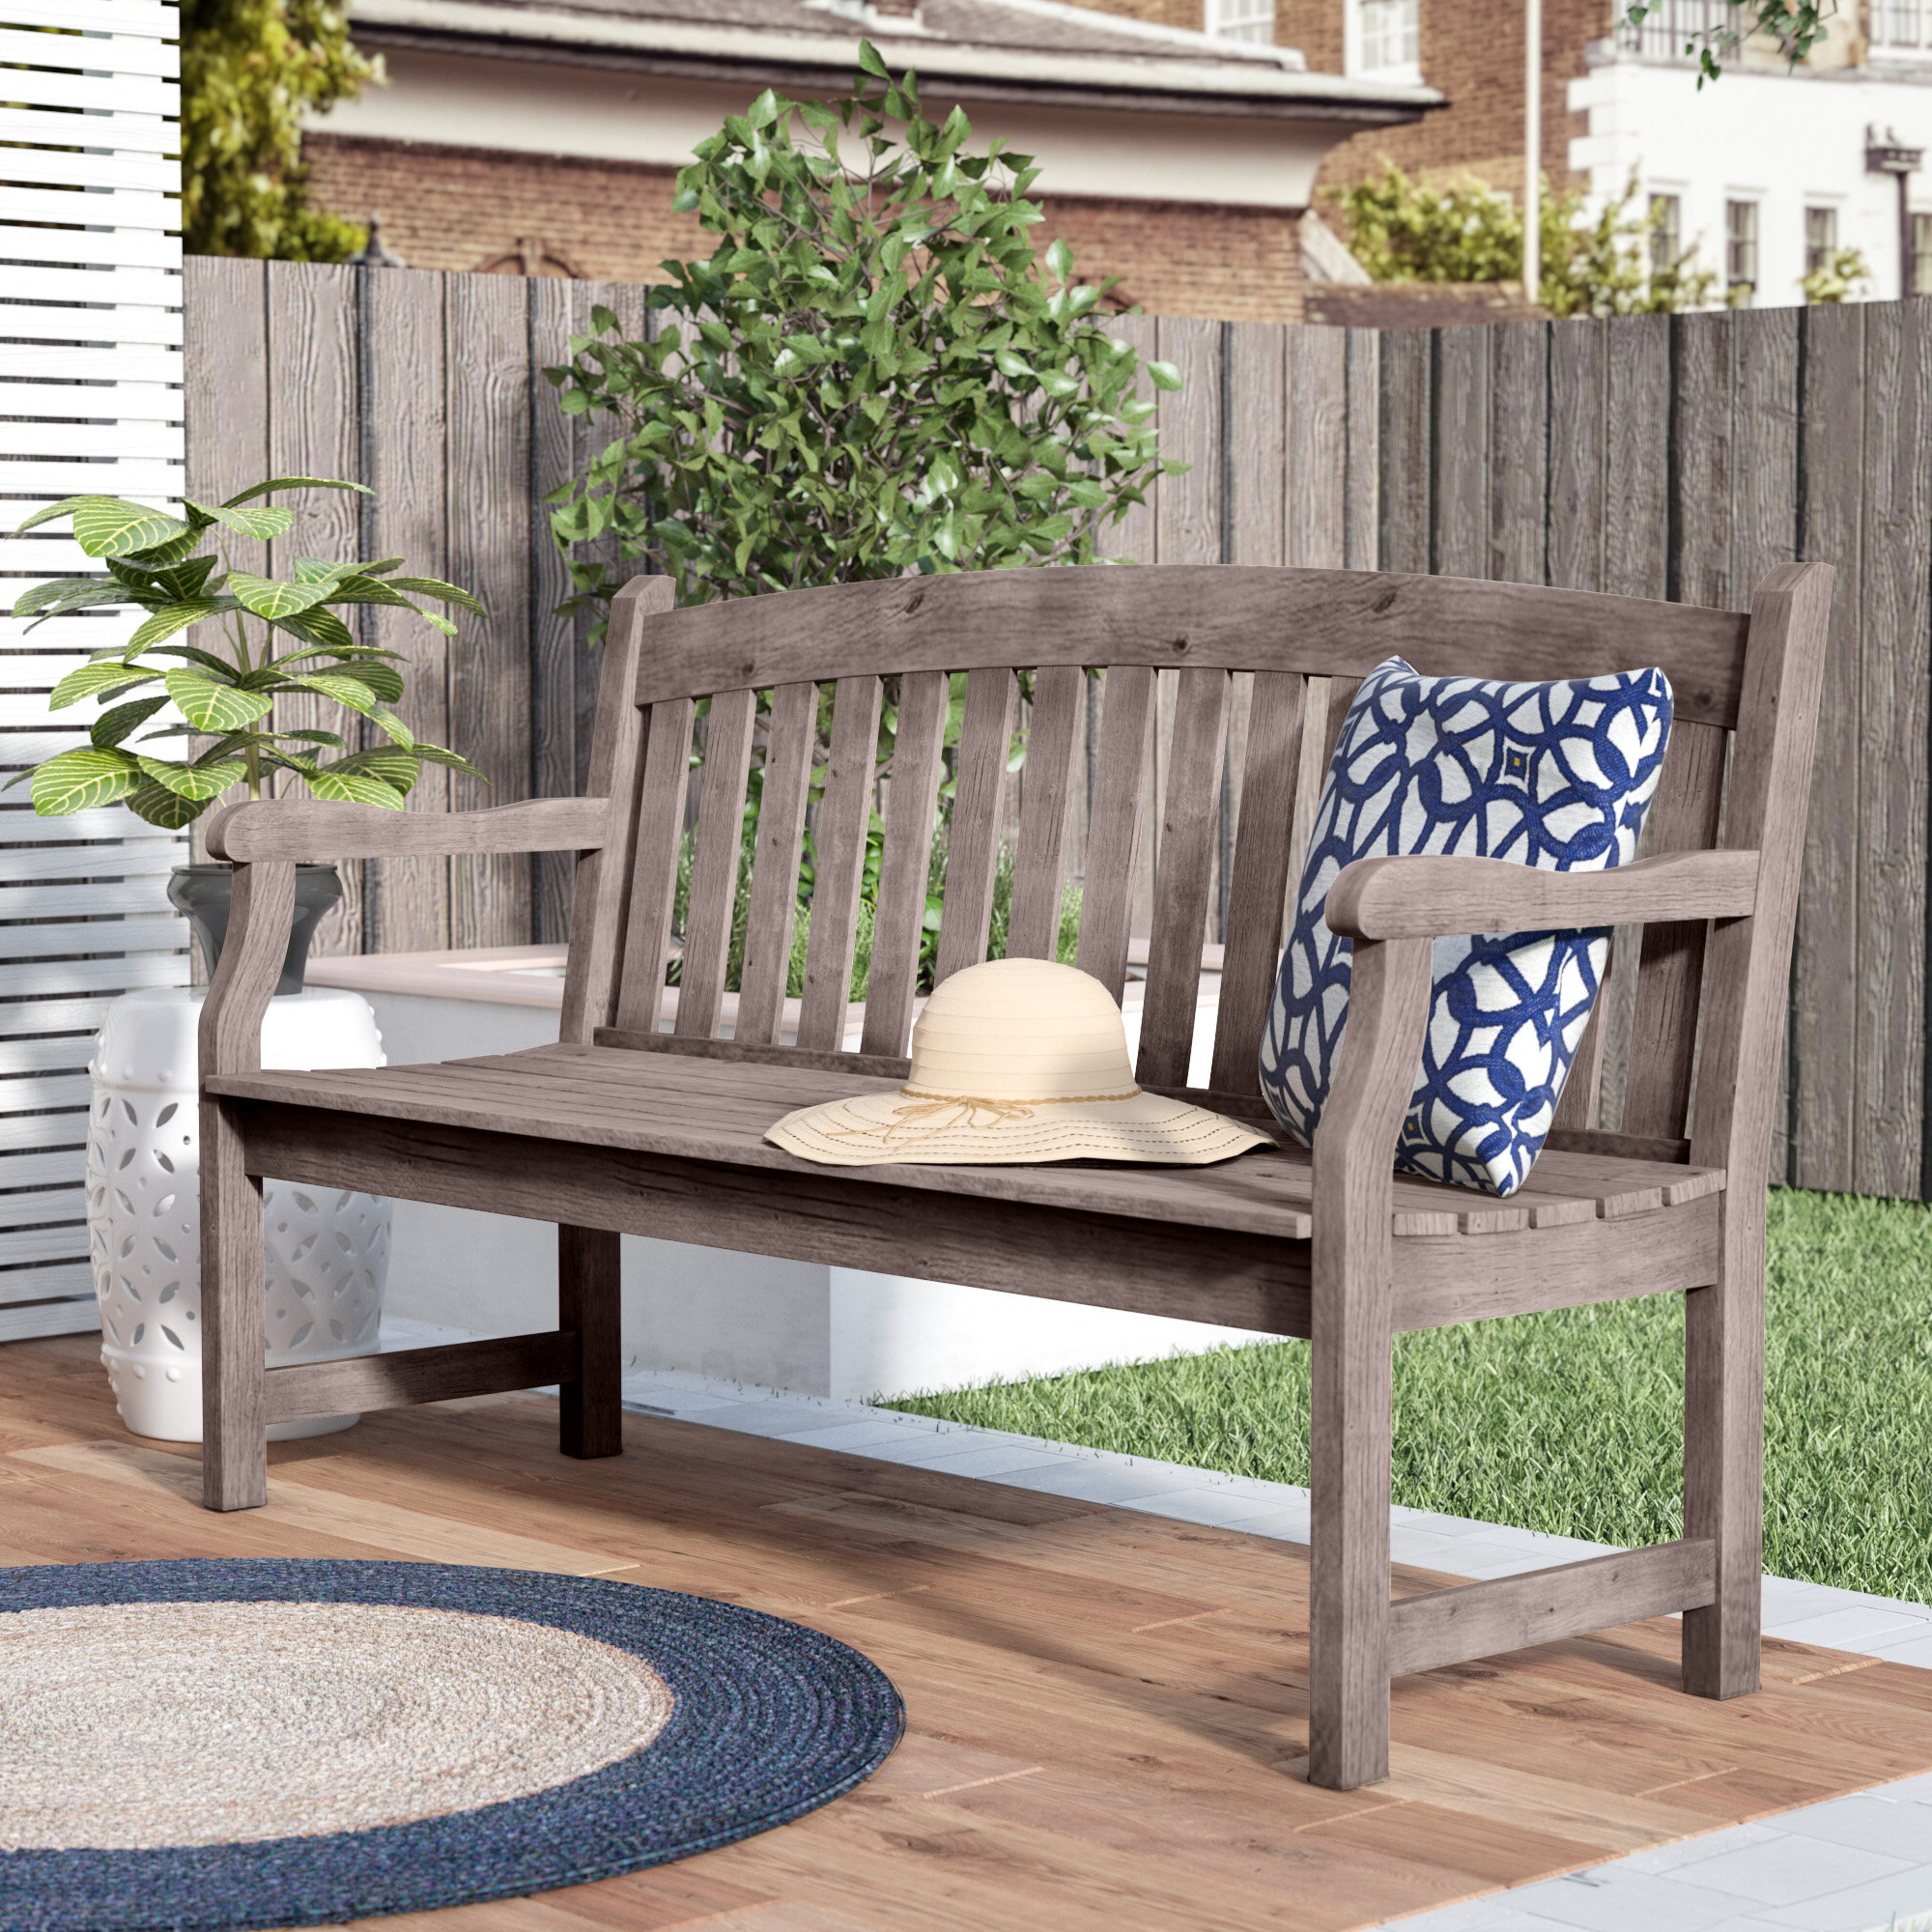 Brecken Teak Garden Benches Throughout Most Recently Released Garden Outdoor Benches You'll Love In (View 11 of 30)